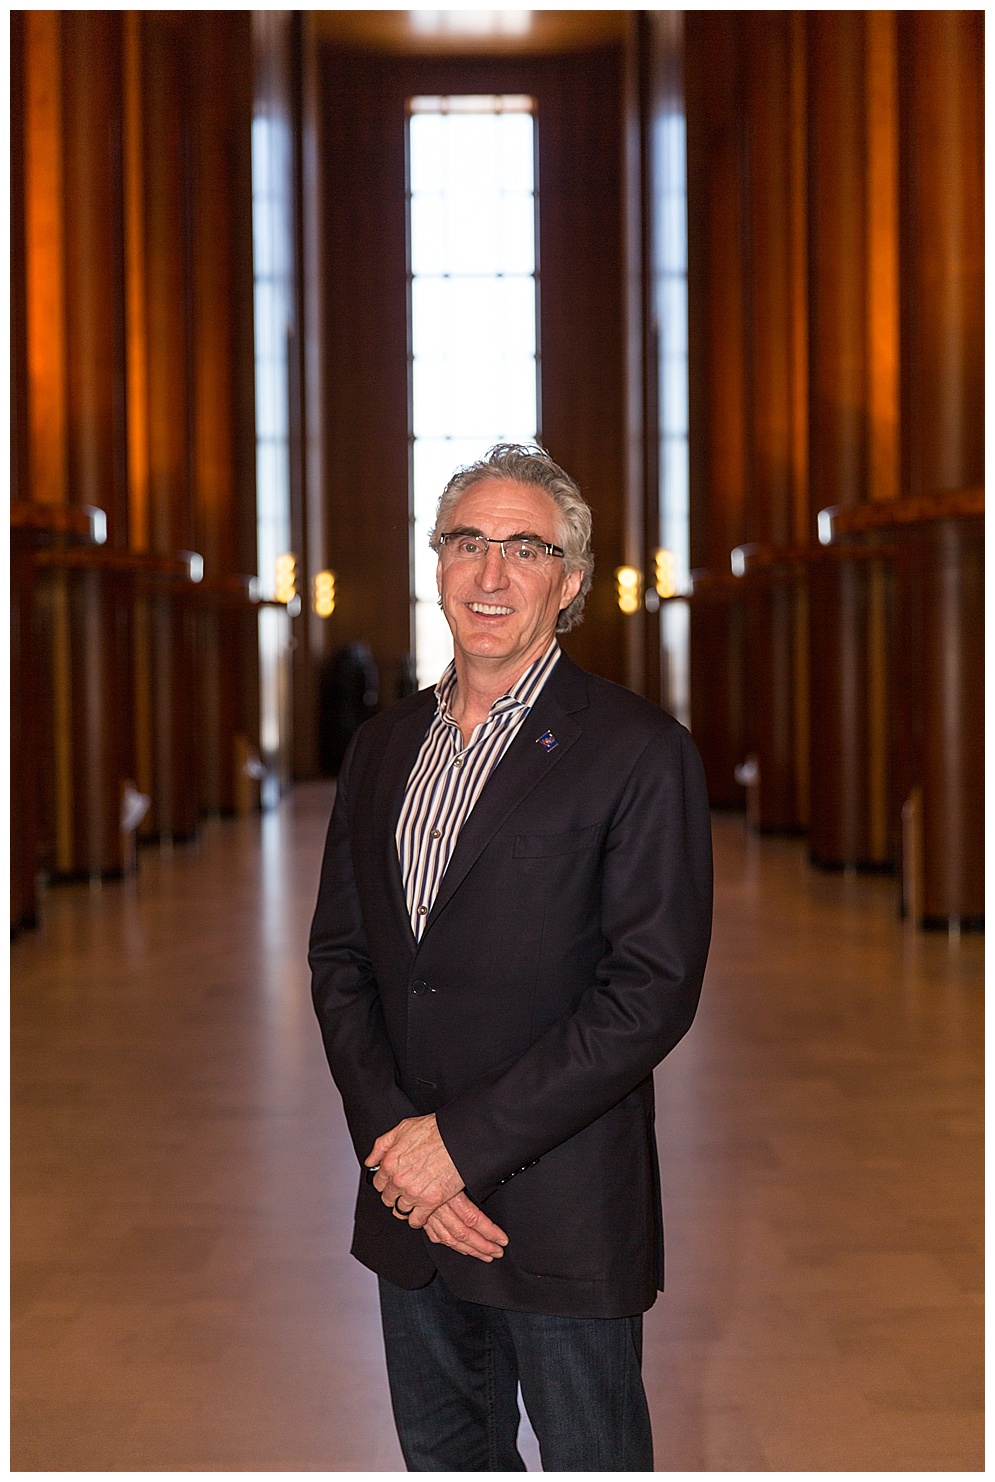 Last year I had the opportunity to meet and photograph Governor Burgum for the Bismarck Mandan Chamber of Commerce Magazine.